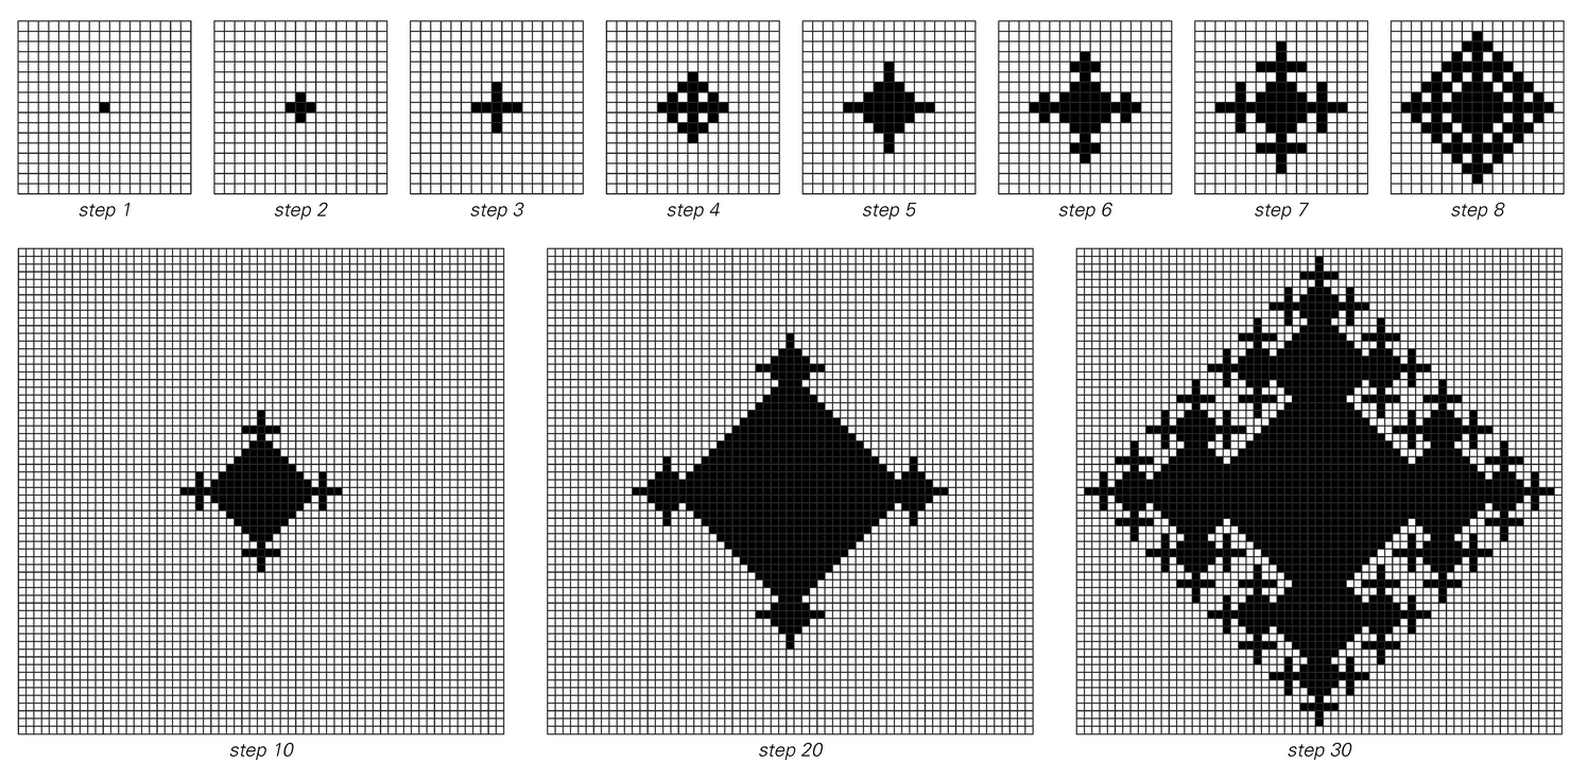 Successive steps in evolution of two-dimensional cellular automaton with different rule